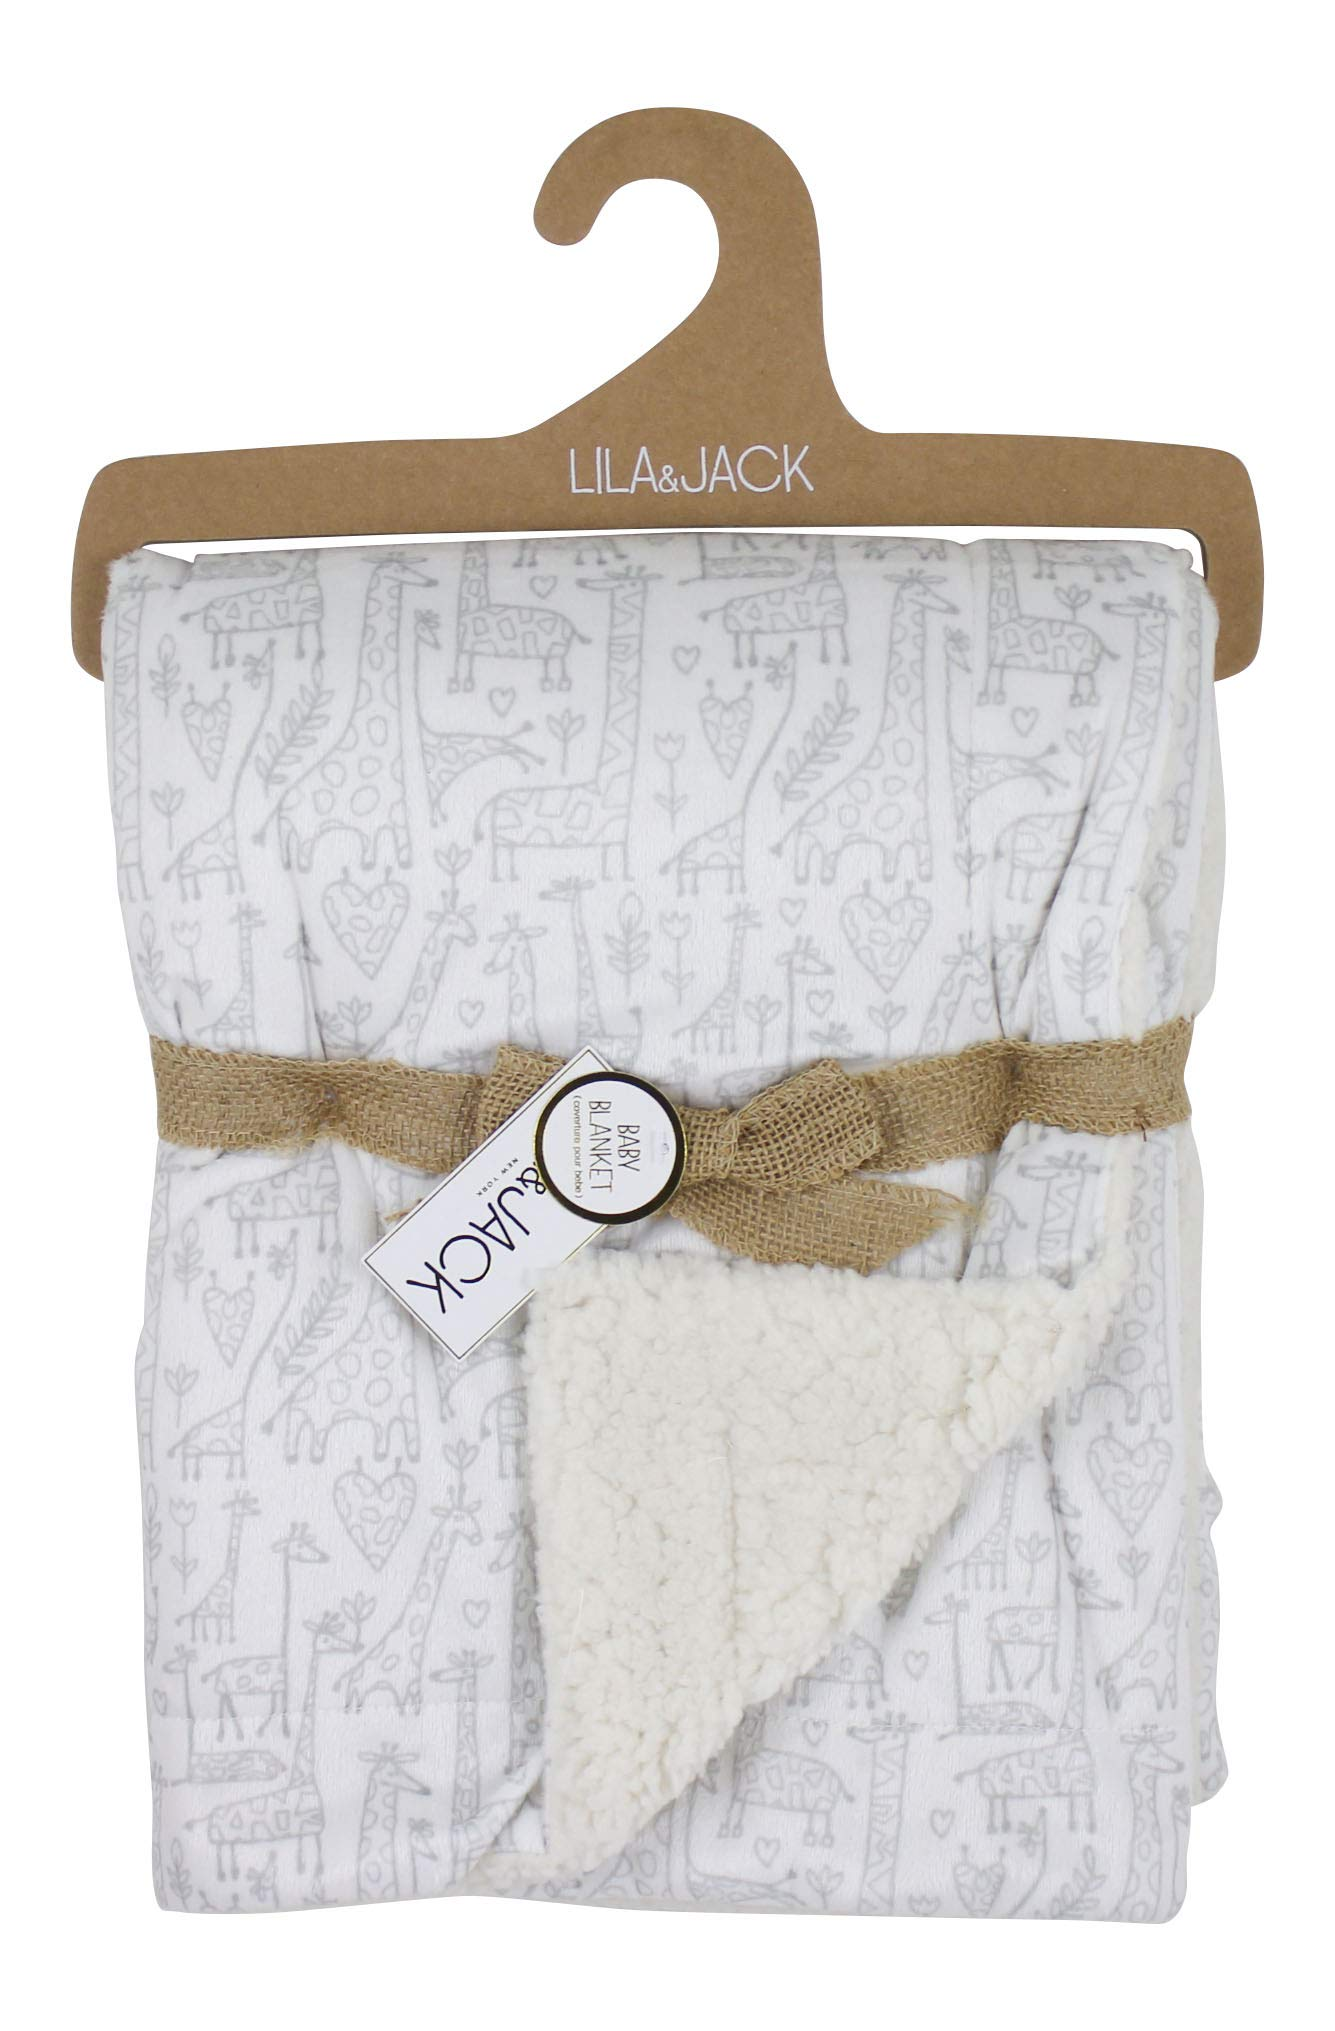 Lila and Jack Soft Baby Blanket - Soft Minky Blanket Perfect, Crib Blanket, Baby Car Blanket & More. Plush Blanket Perfect for Newborns and Toddlers (Giraffe)